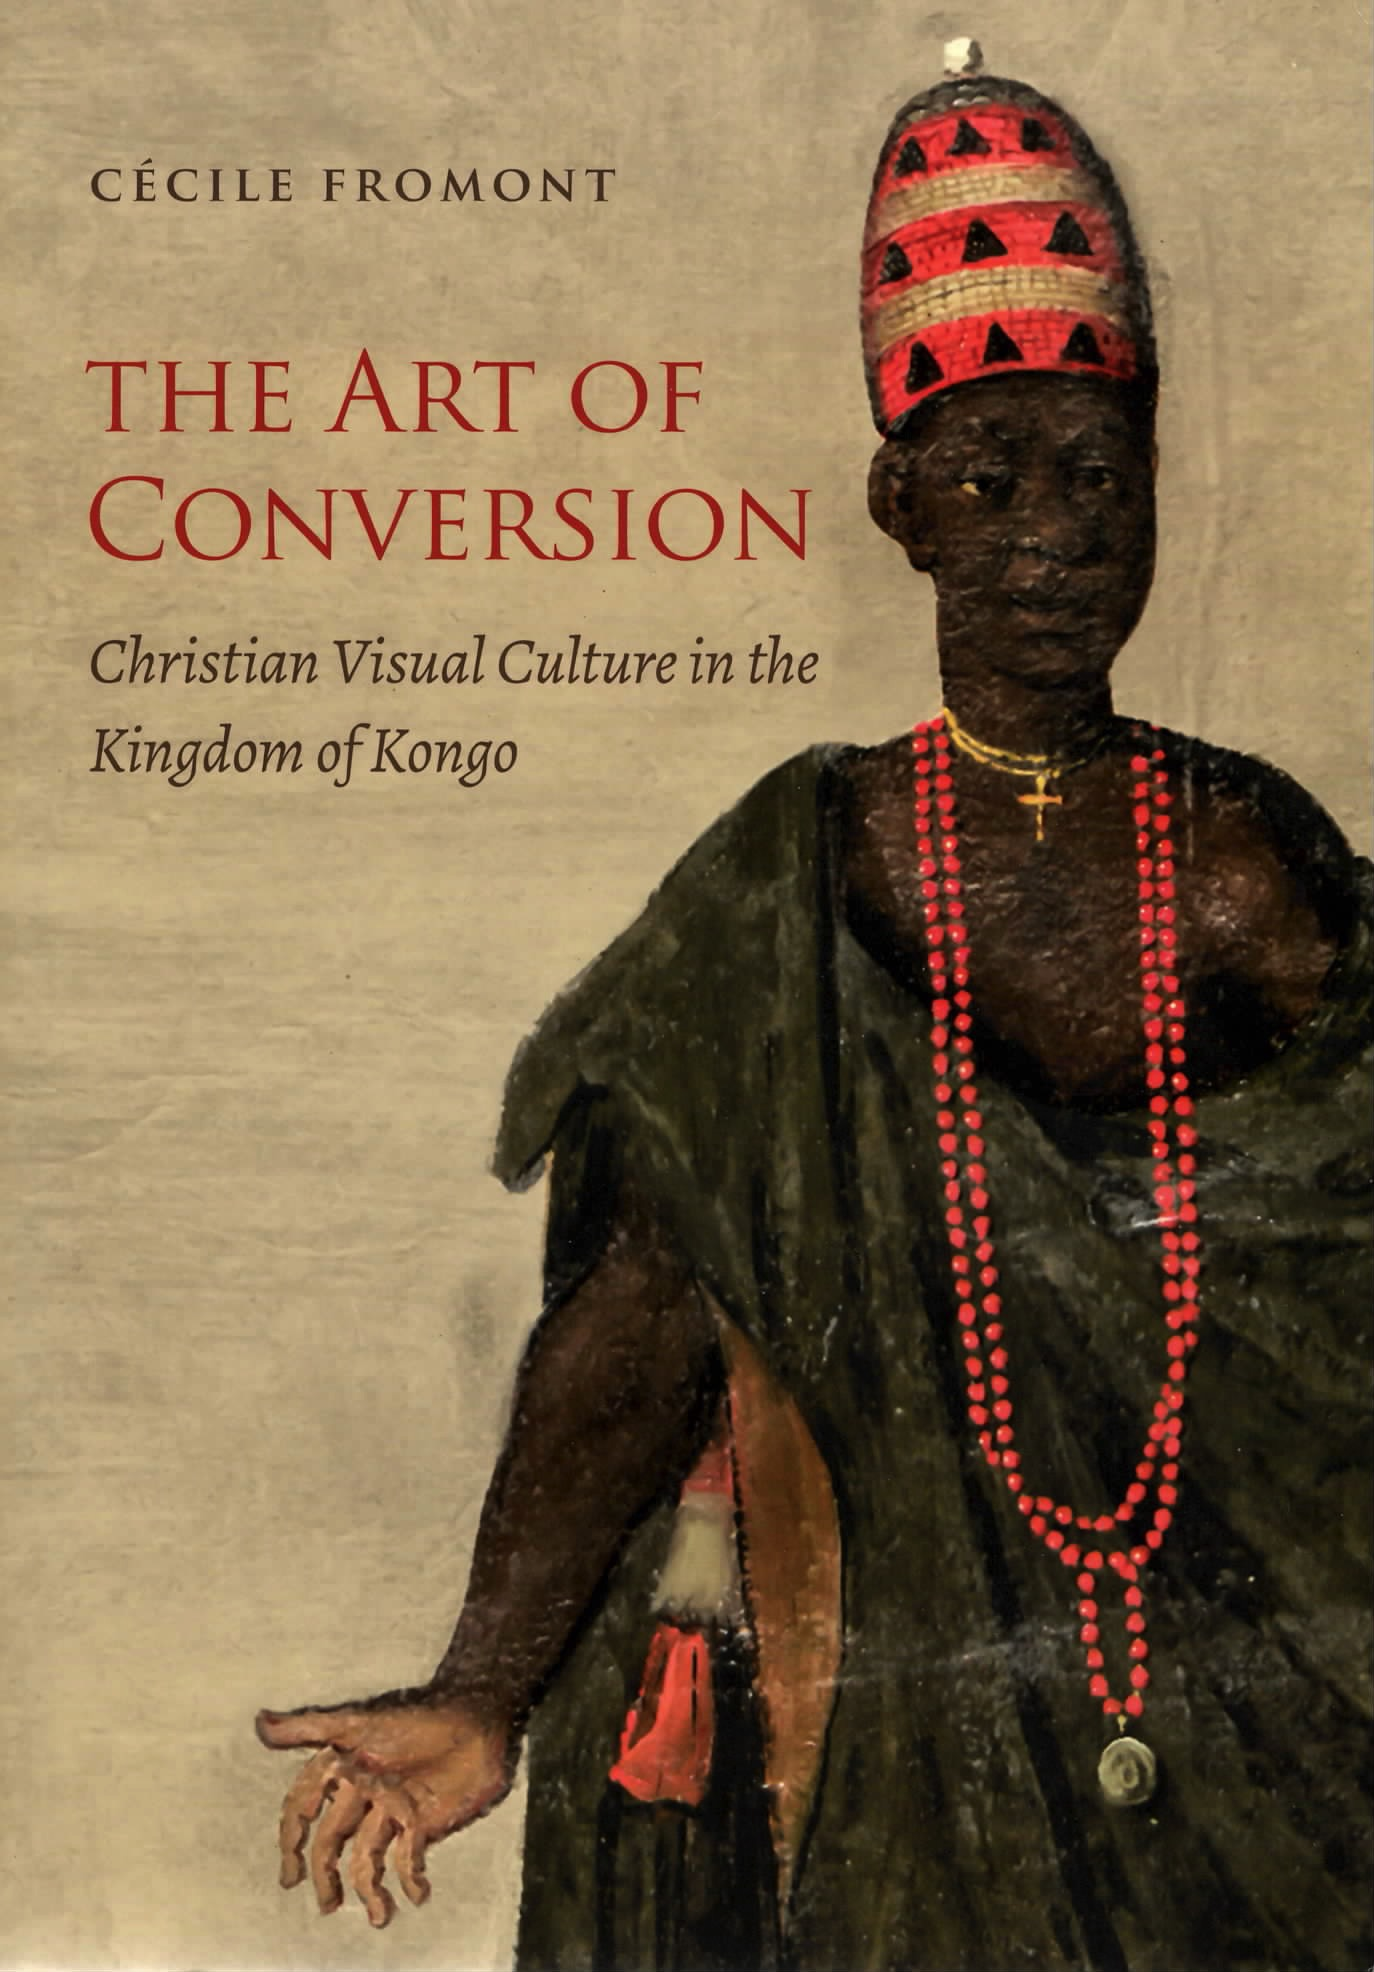 The Art of Conversion: Christian Visual Culture in the Kingdom of Kongo